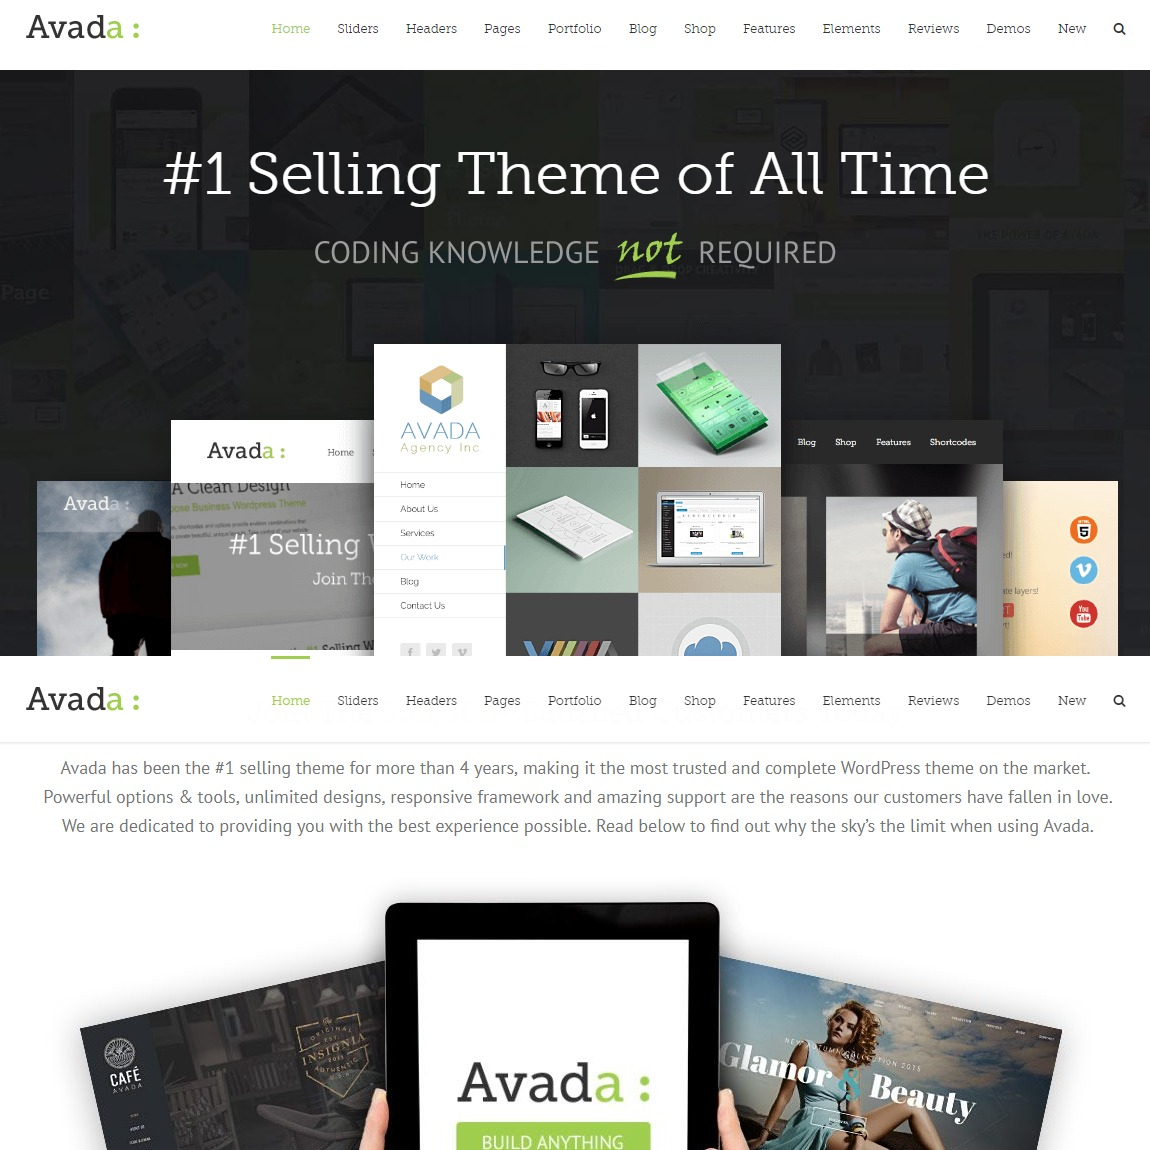 Avada-customizable-wp-theme